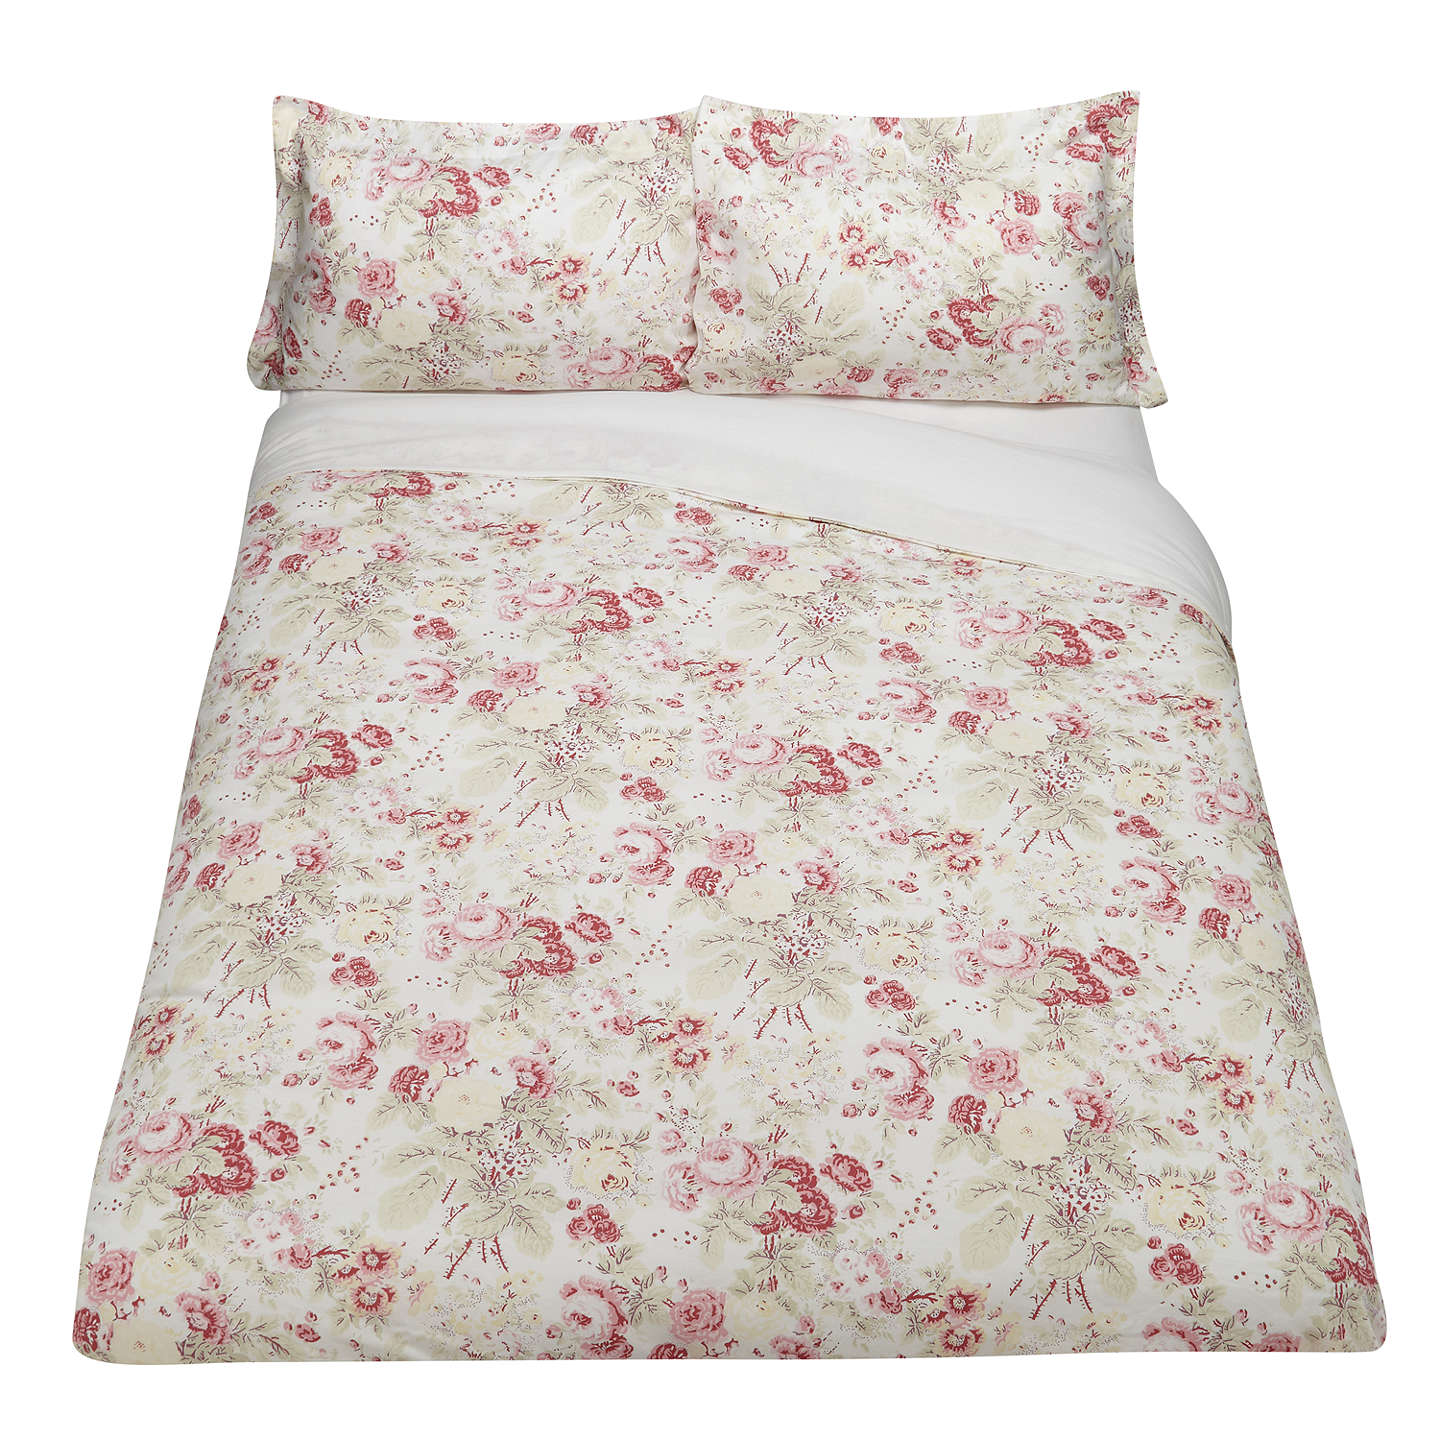 BuyCabbages & Roses Vintage Francis Print Cotton and Linen Oxford Pillowcase Online at johnlewis.com